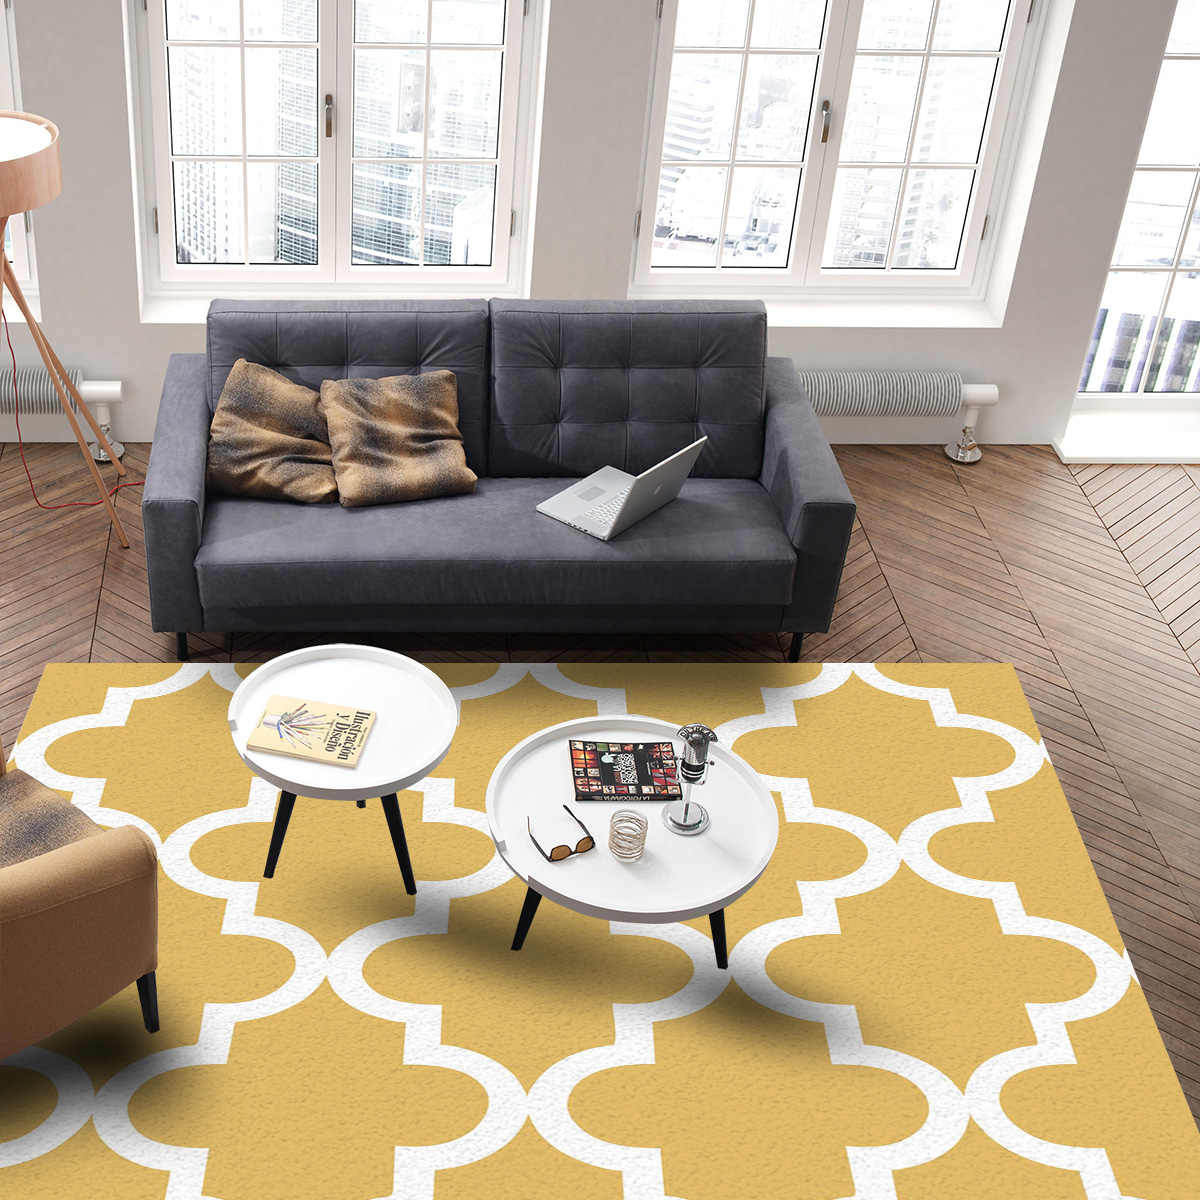 Geometric Lattice Prismatic Moroccan Style Yellow Modern Carpets For Living Room Rugs Large Anti Slip Safety Carpet